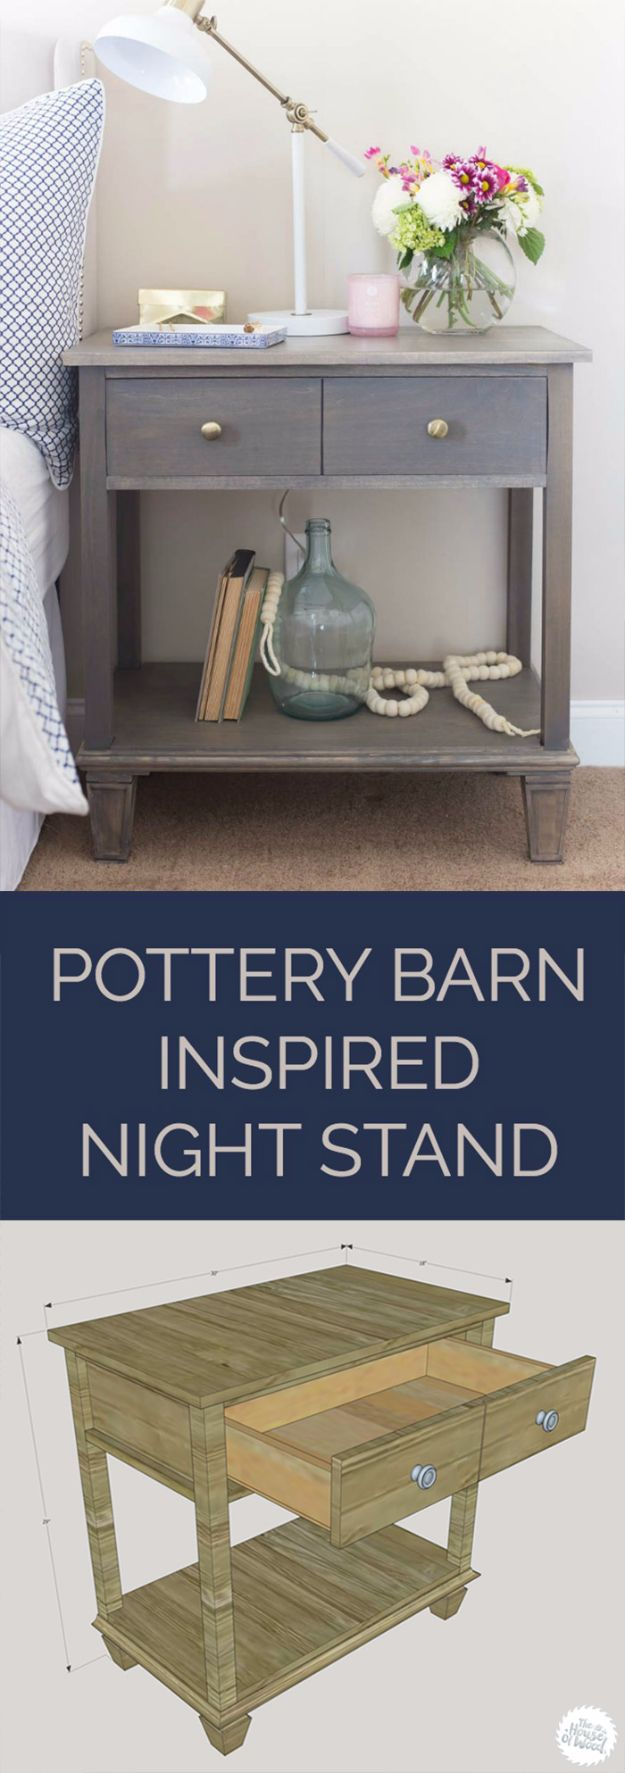 DIY Nightstands for the Bedroom - DIY Pottery Barn Inspired Nightstand - Easy Do It Yourself Bedside Tables and Furniture Project Ideas - Thrift Store Makeovers For Your Room and Bed Side Night Stand - Storage for Books and Remotes, Cute Shabby Chic and Vintage Decor - Step by Step Tutorials and Instructions http://diyjoy.com/diy-nightstands-bedroom